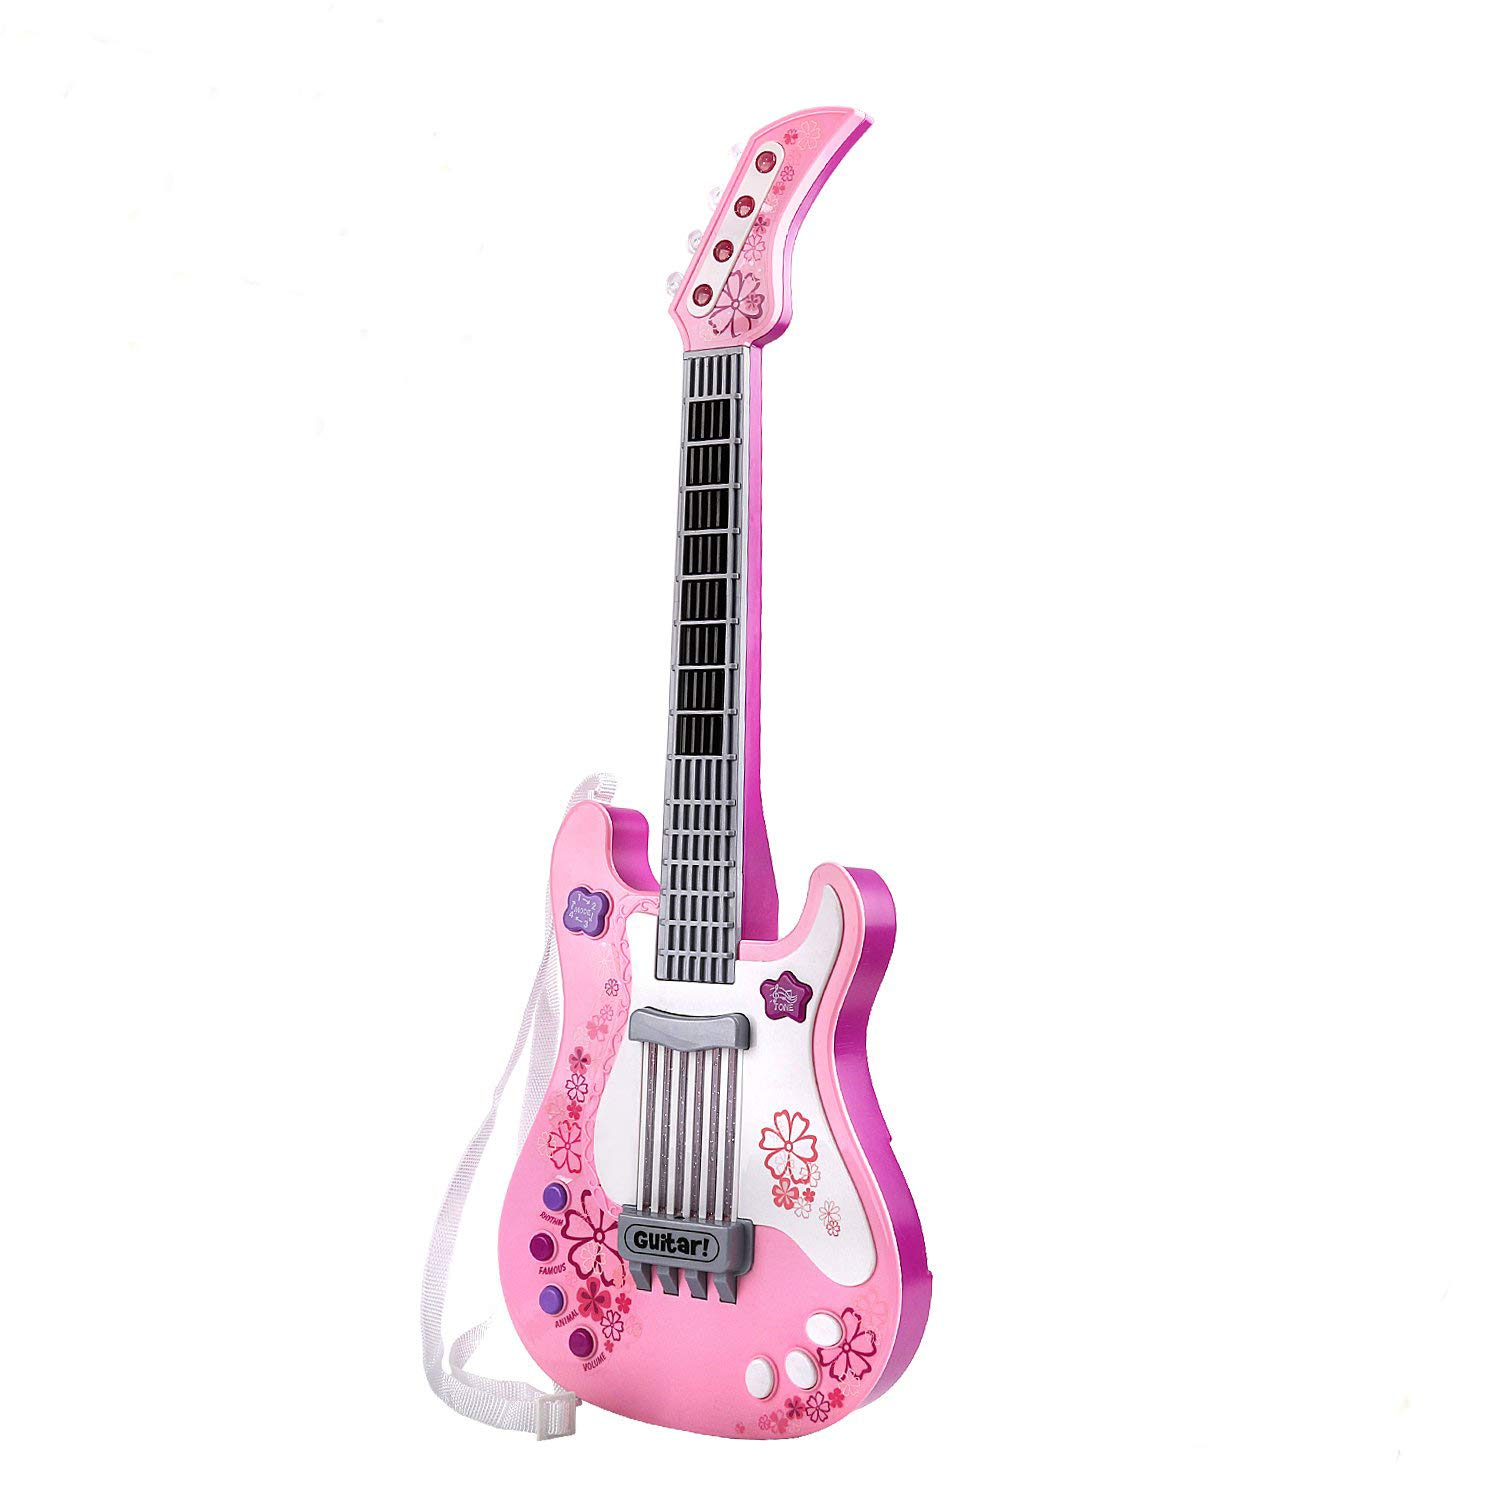 M SANMERSEN Guitar Toys for Kids with Vibrant Sounds No String-RO (Pink) by M SANMERSEN